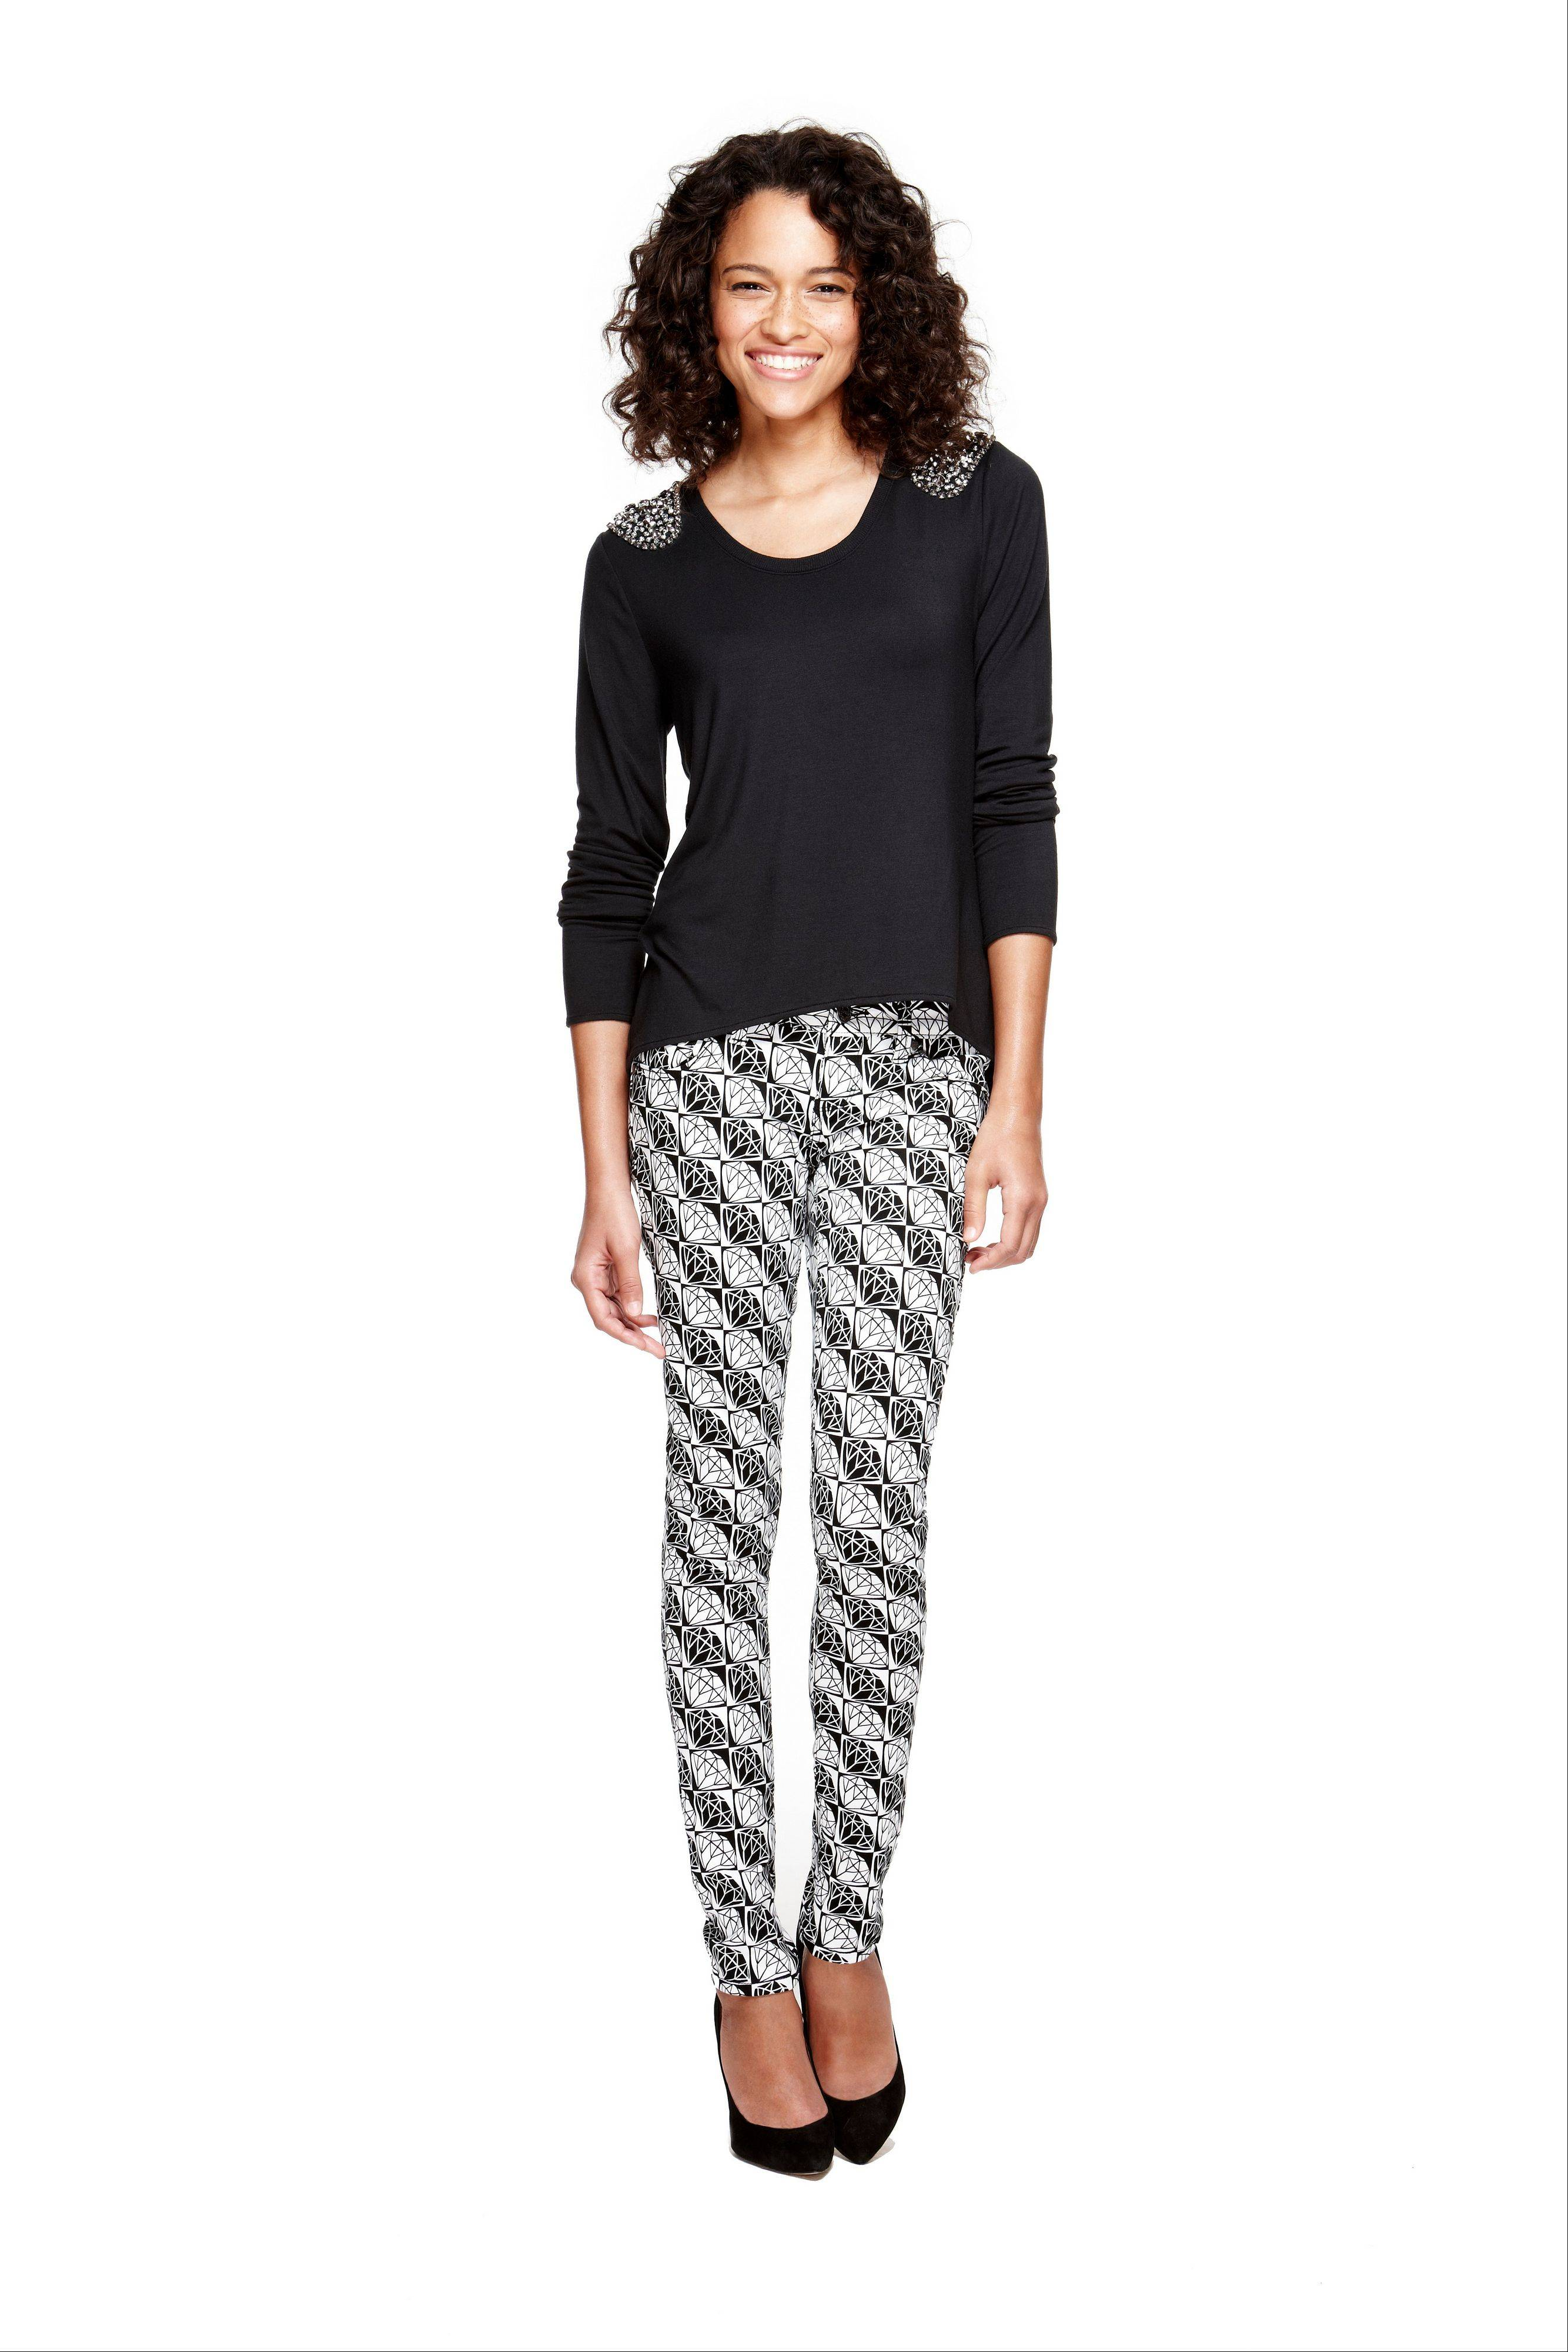 For fall, try a relaxed track printed pant. This is from the youth line called L'Amour.